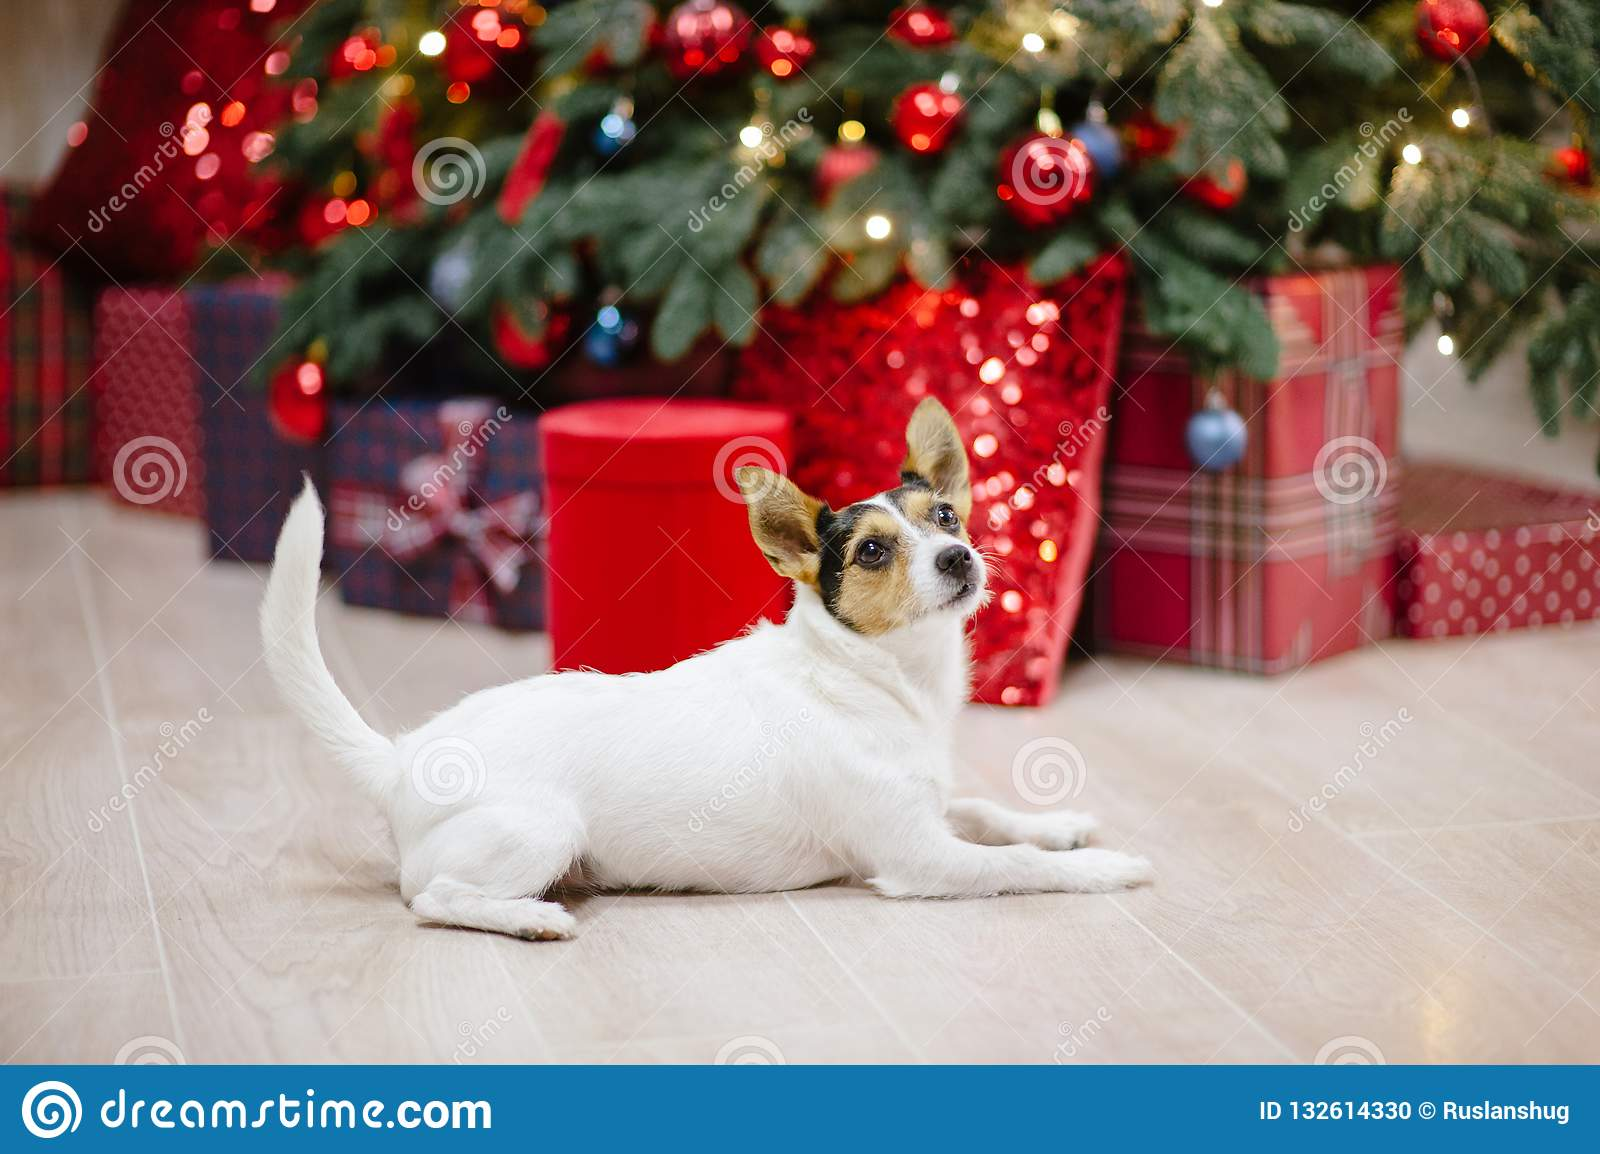 JACK RUSSELL TERRIER DOG CHRISTMAS ORNAMENT